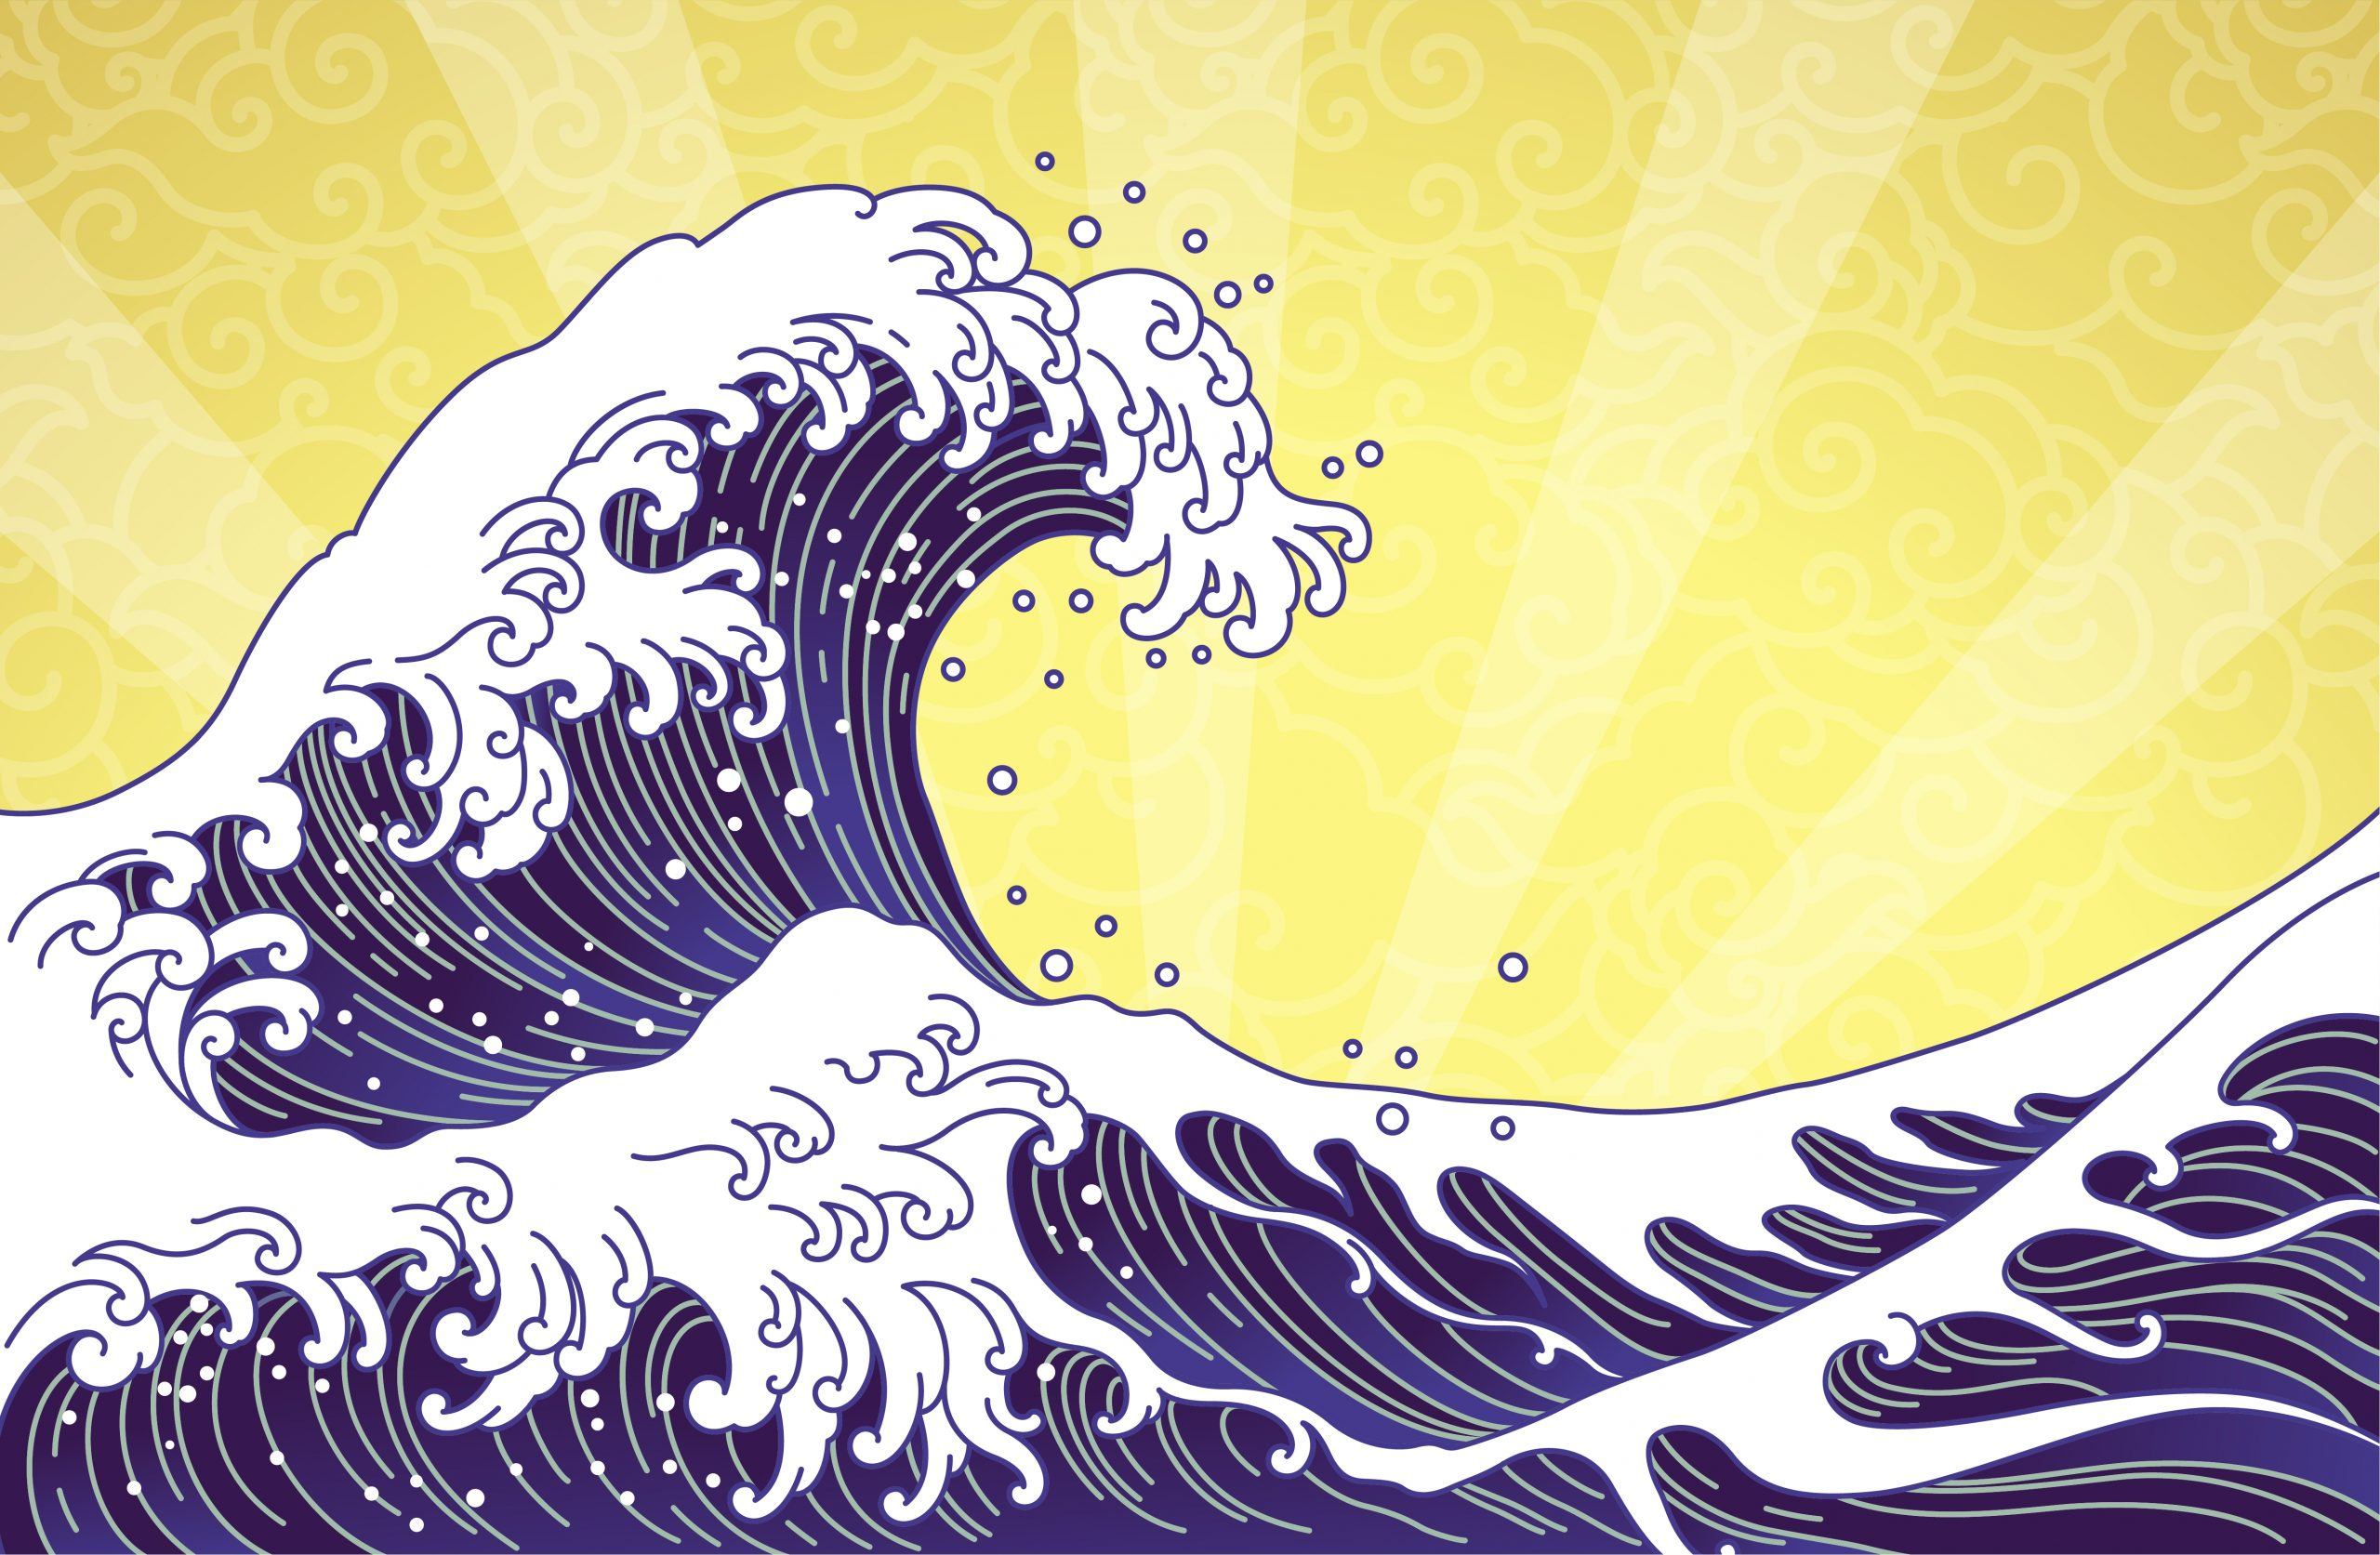 Great wave and ocean oriental style illustration isolated on  golden sunshine and  seamless clouds background. Japan waves and Chinese cloud vector.